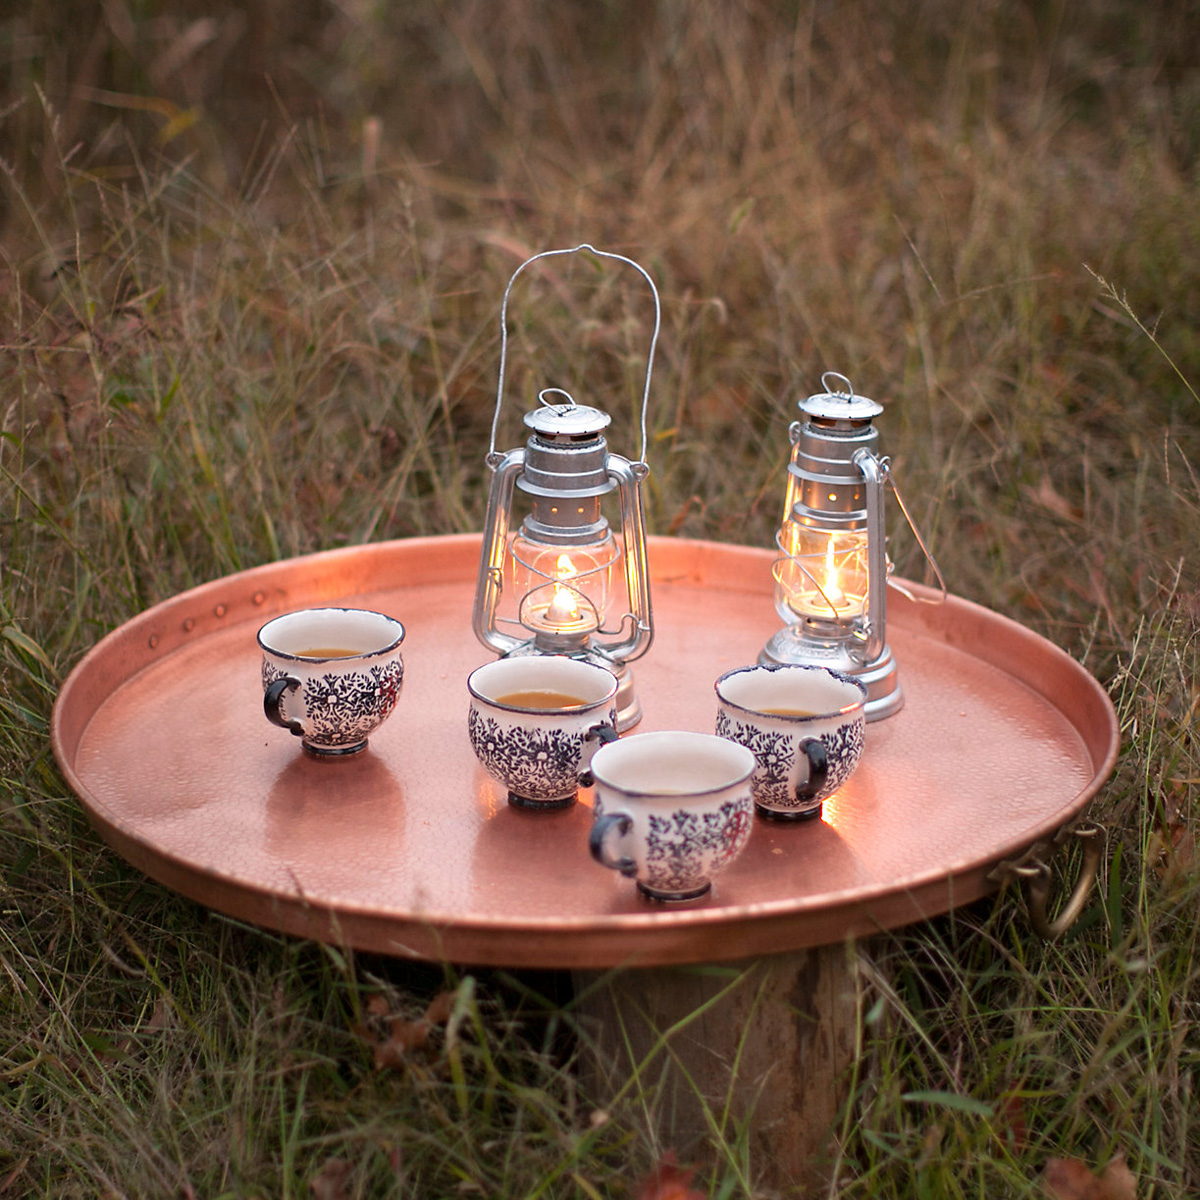 Handcrafted Copper Fire Pit Grill Table